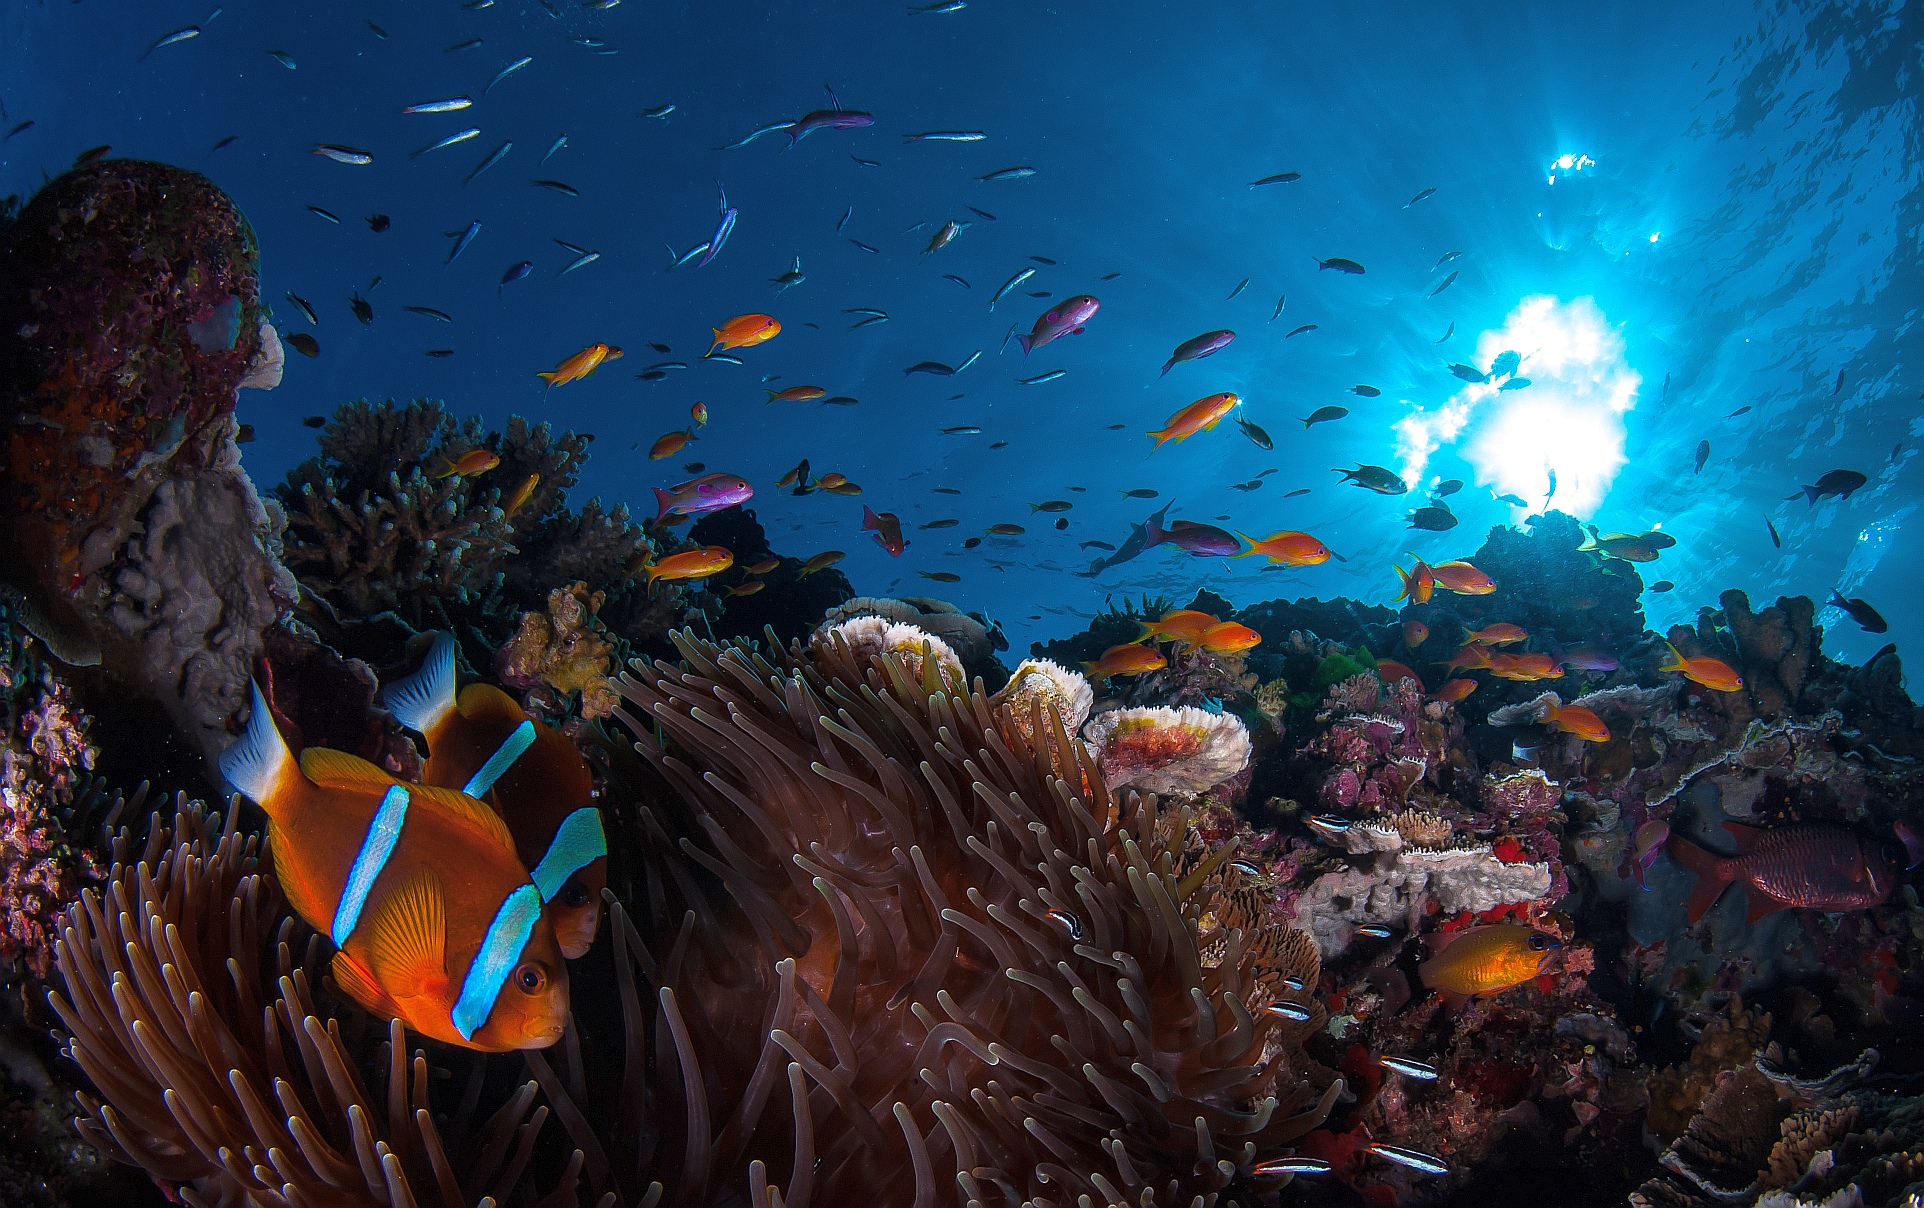 Pictured is a clown fish among beautiful colourful coral on the Great Barrier Reef